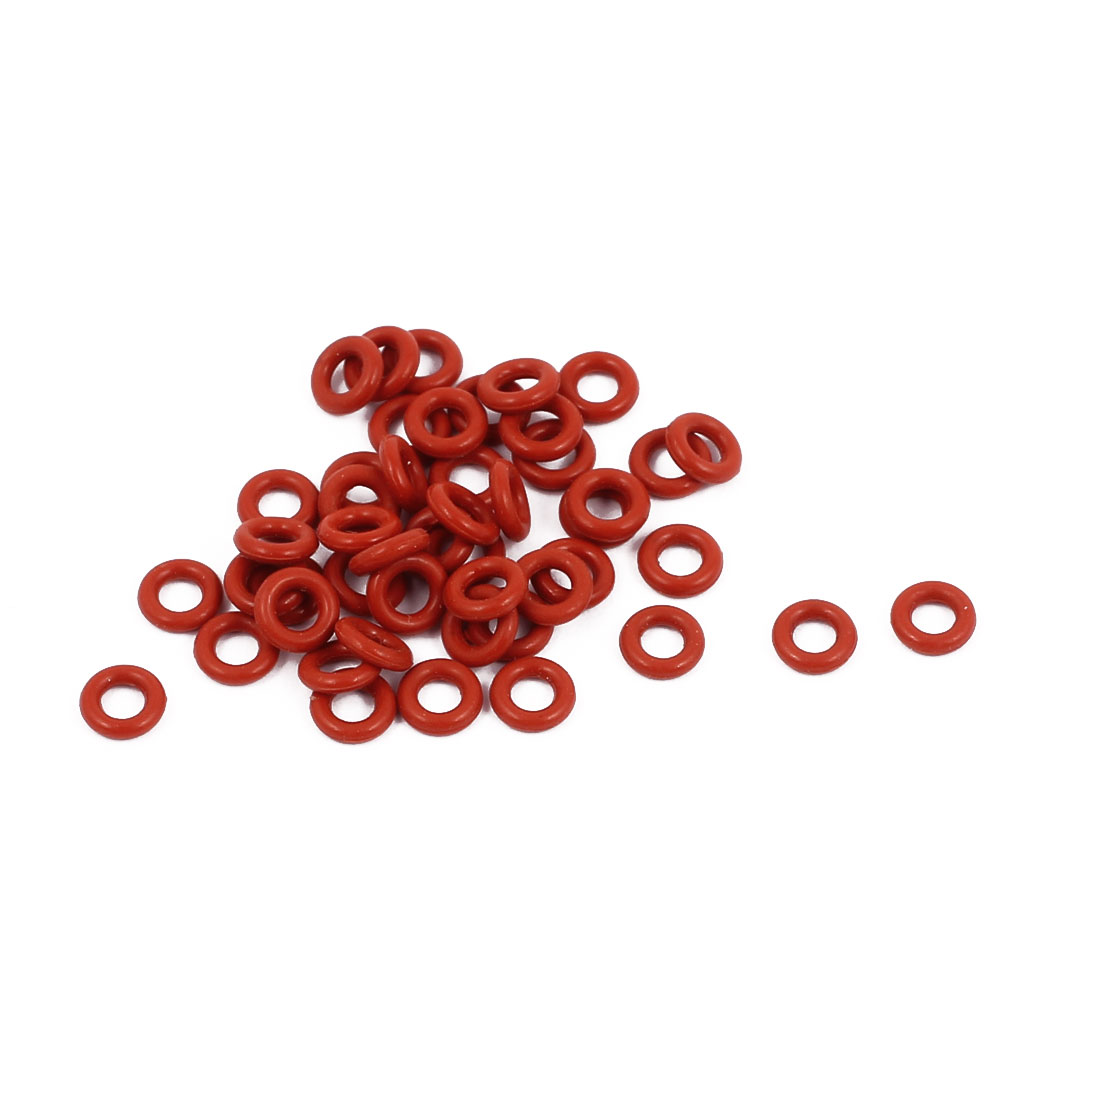 50Pcs 4mm x 1mm Rubber O-rings NBR Heat Resistant Sealing Ring Grommets Red